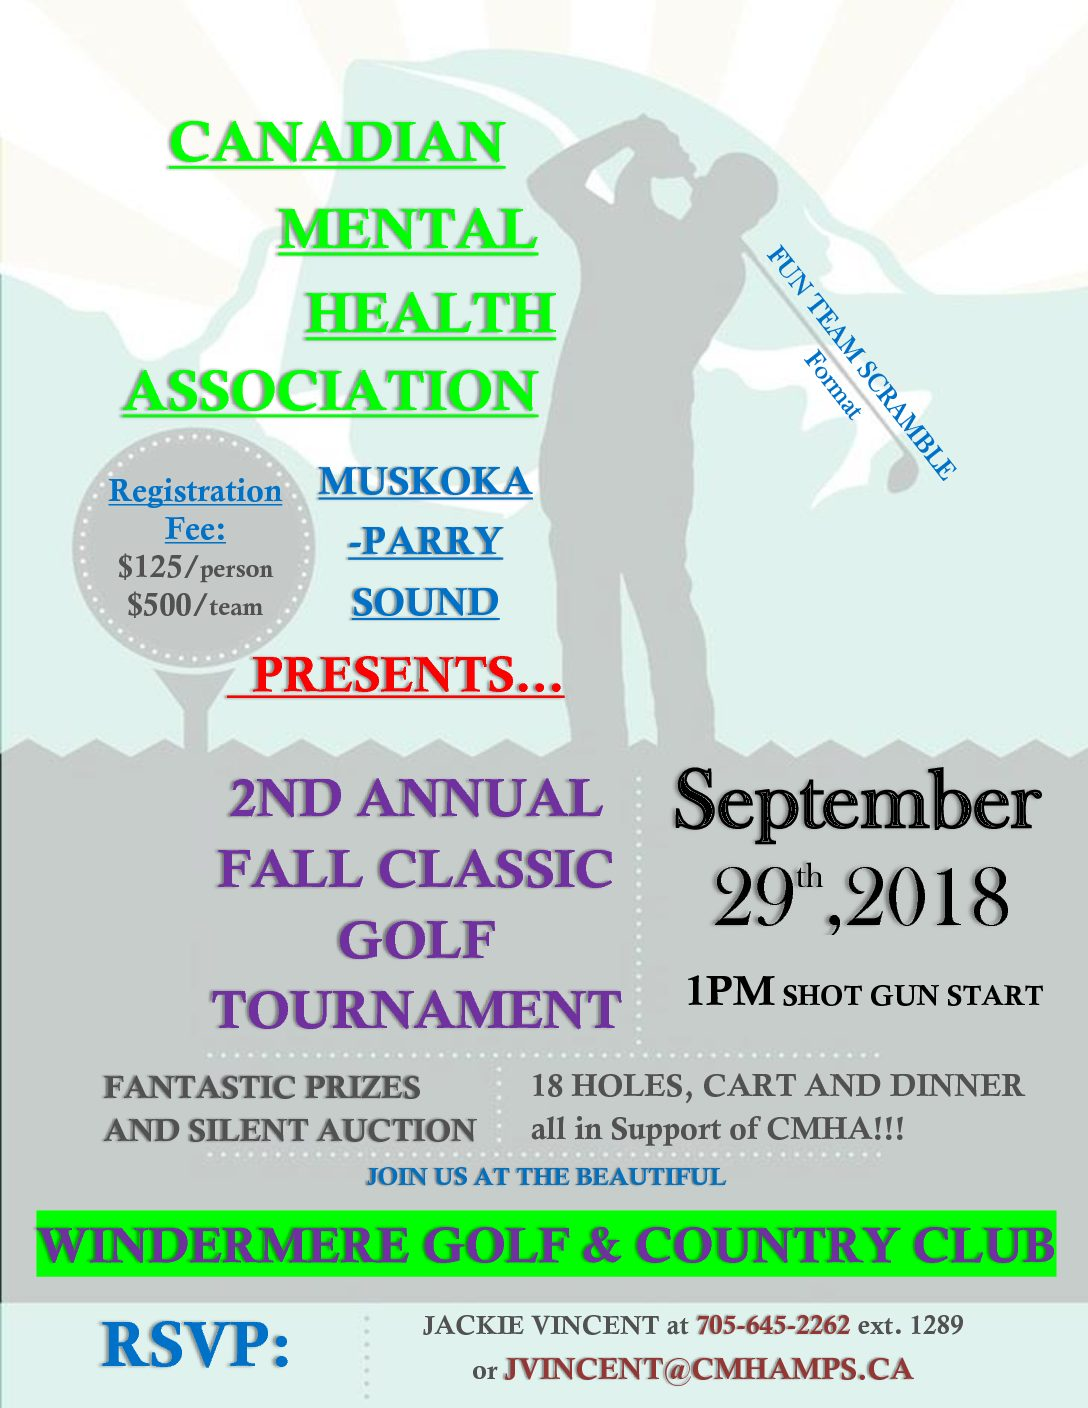 Fall Classic Golf Tournament @ Windermere Golf & Country Club – September 29, 2018